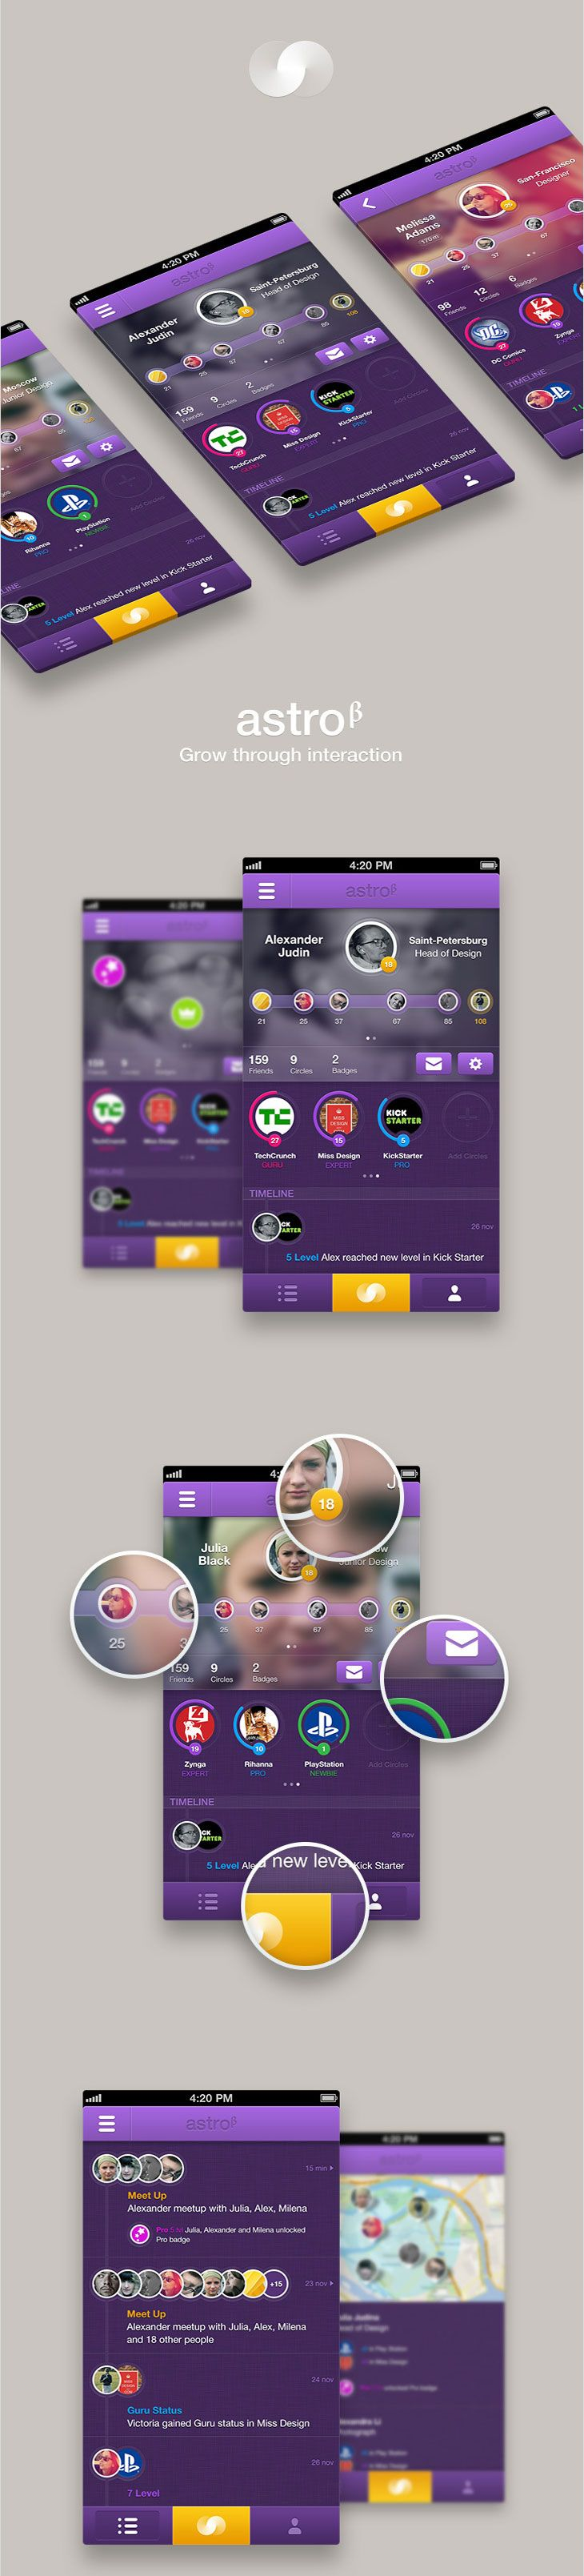 Collection of color palettes photoshop for ui designs web3canvas - Find This Pin And More On Color Palette By Simara001